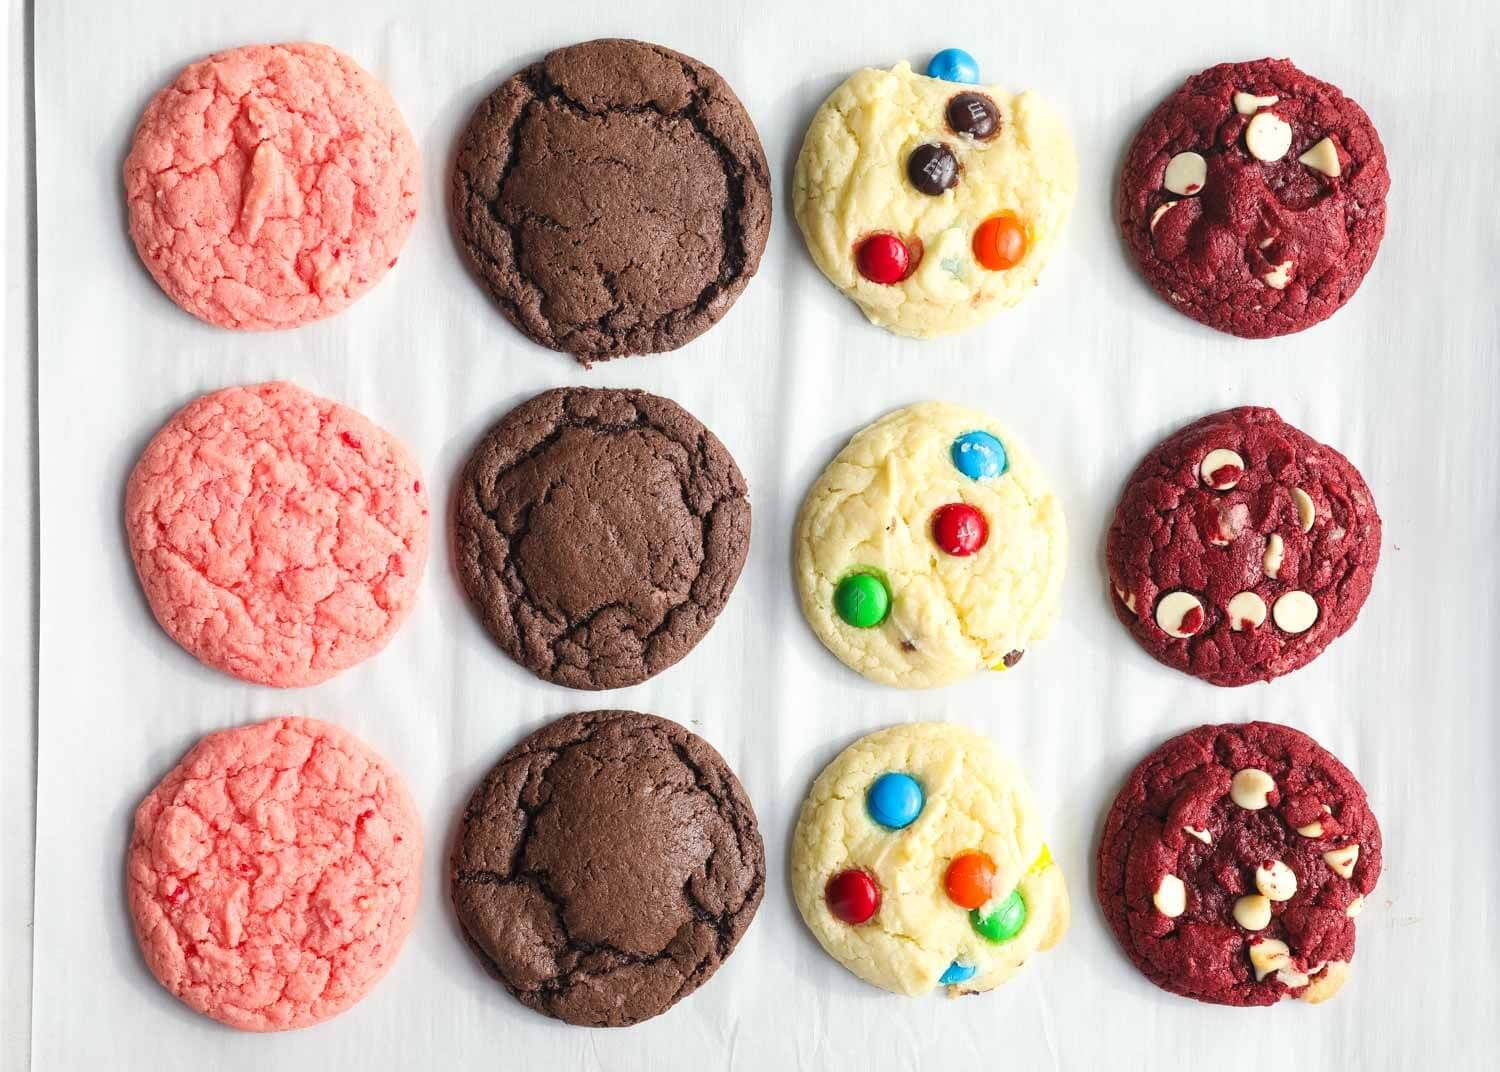 15 Unexpected Things You Can Do With Cake Mix